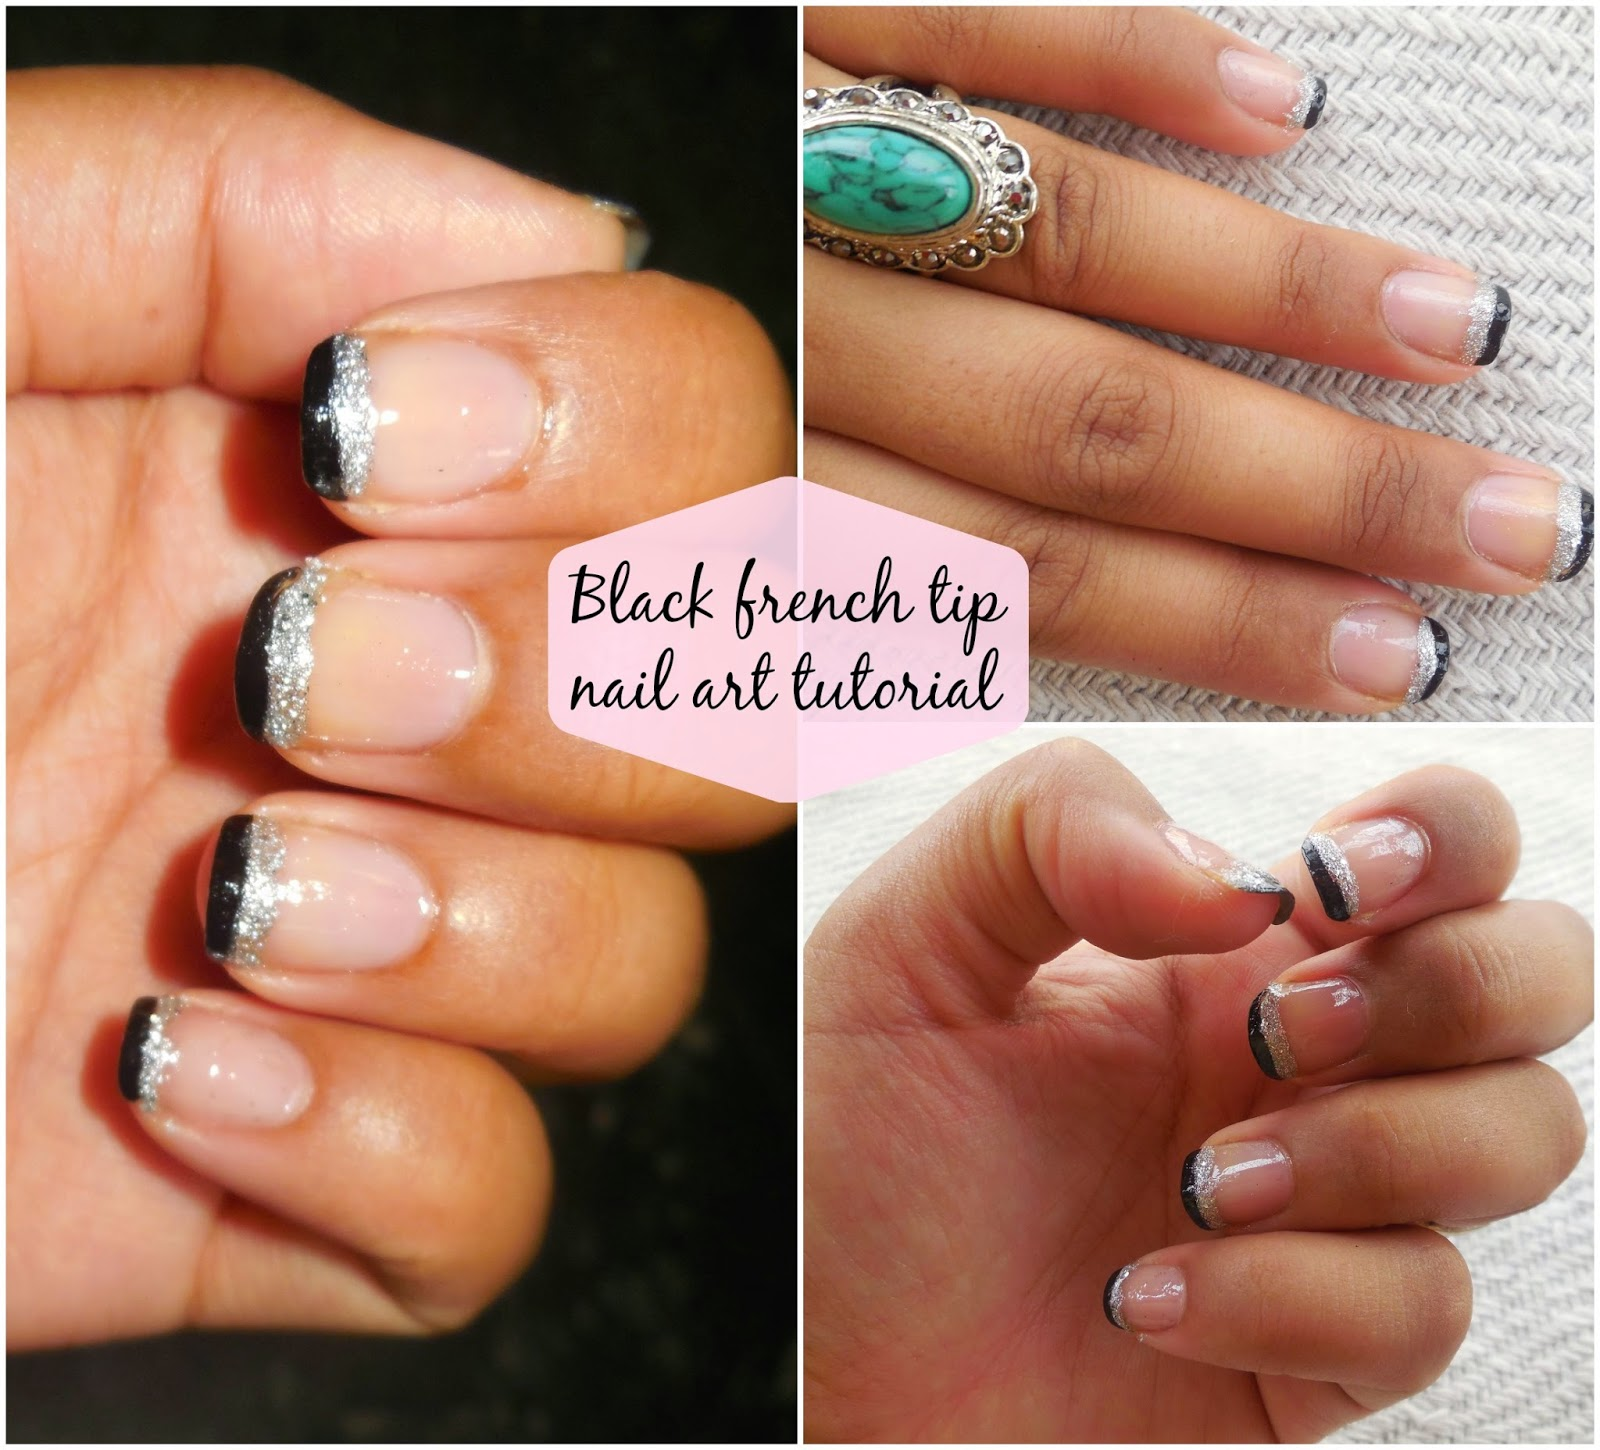 How To : Black French Tip Nail Art Tutorial